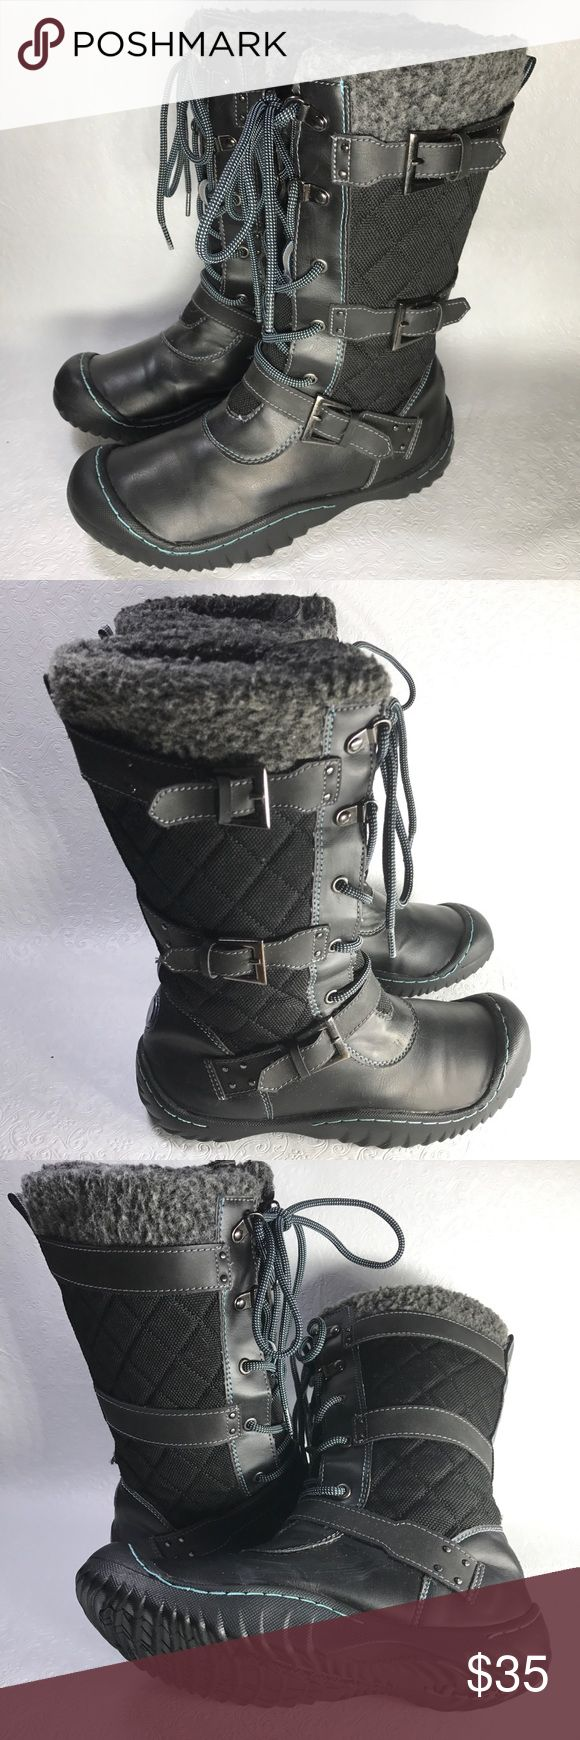 J-41 Jeep Engineered Traction boots Mid-calf Shows Minor Signs of Wear Jeep Engineered Traction Sole J-41 Brand Quilted nylon upper lined with faux fur  Lace Up  Medium width J-41 Shoes Winter & Rain Boots